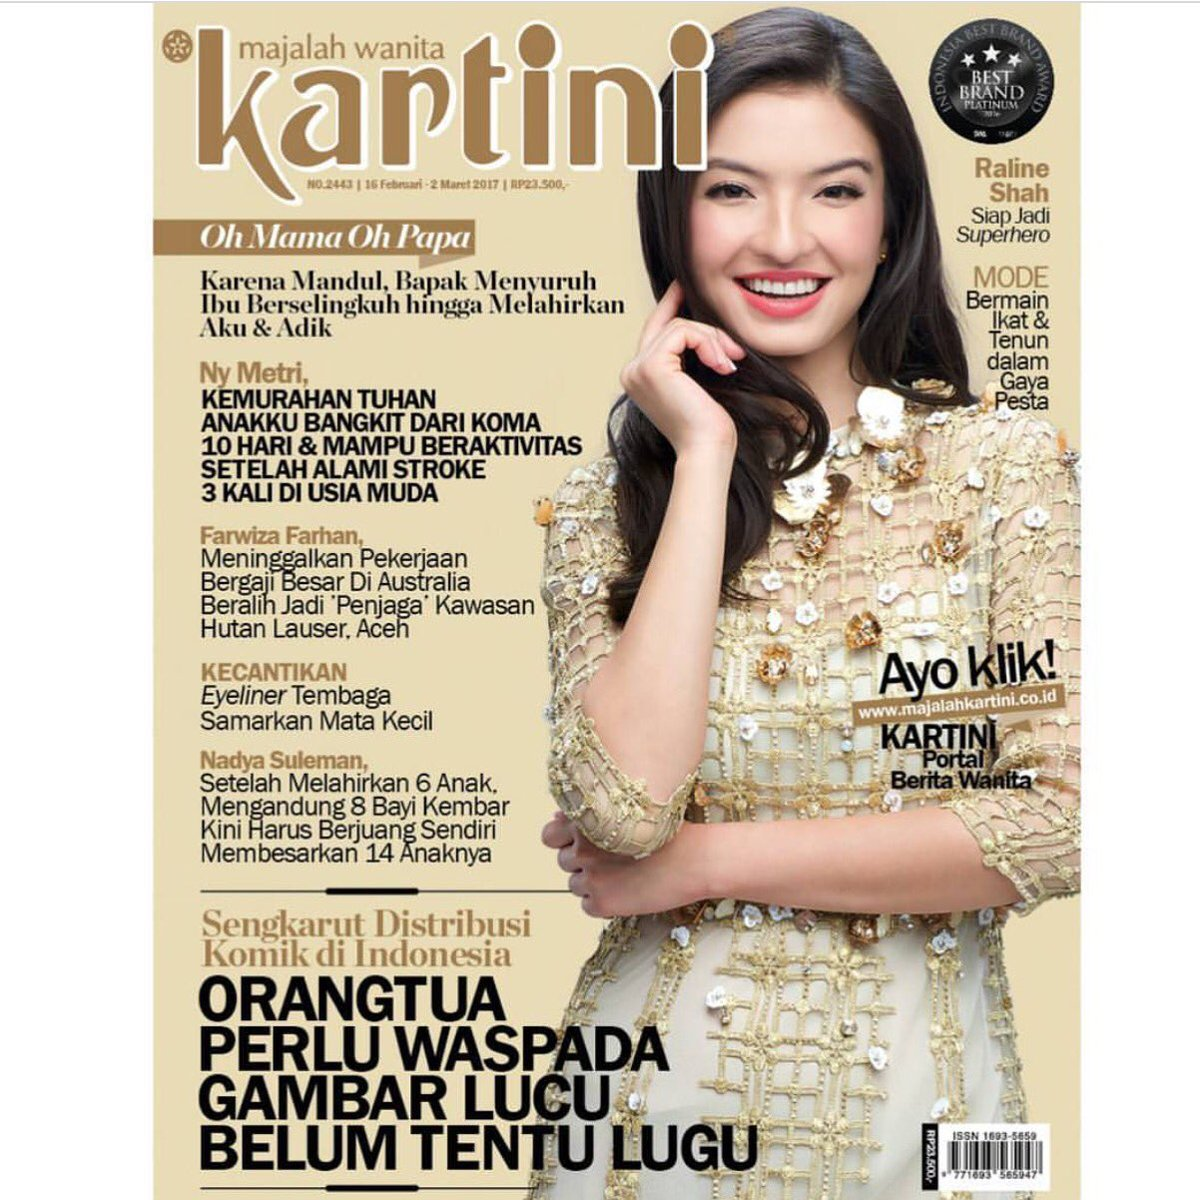 Out now! Iconic Indonesian women's magazine since the 70's! @MajalahKartini ❤